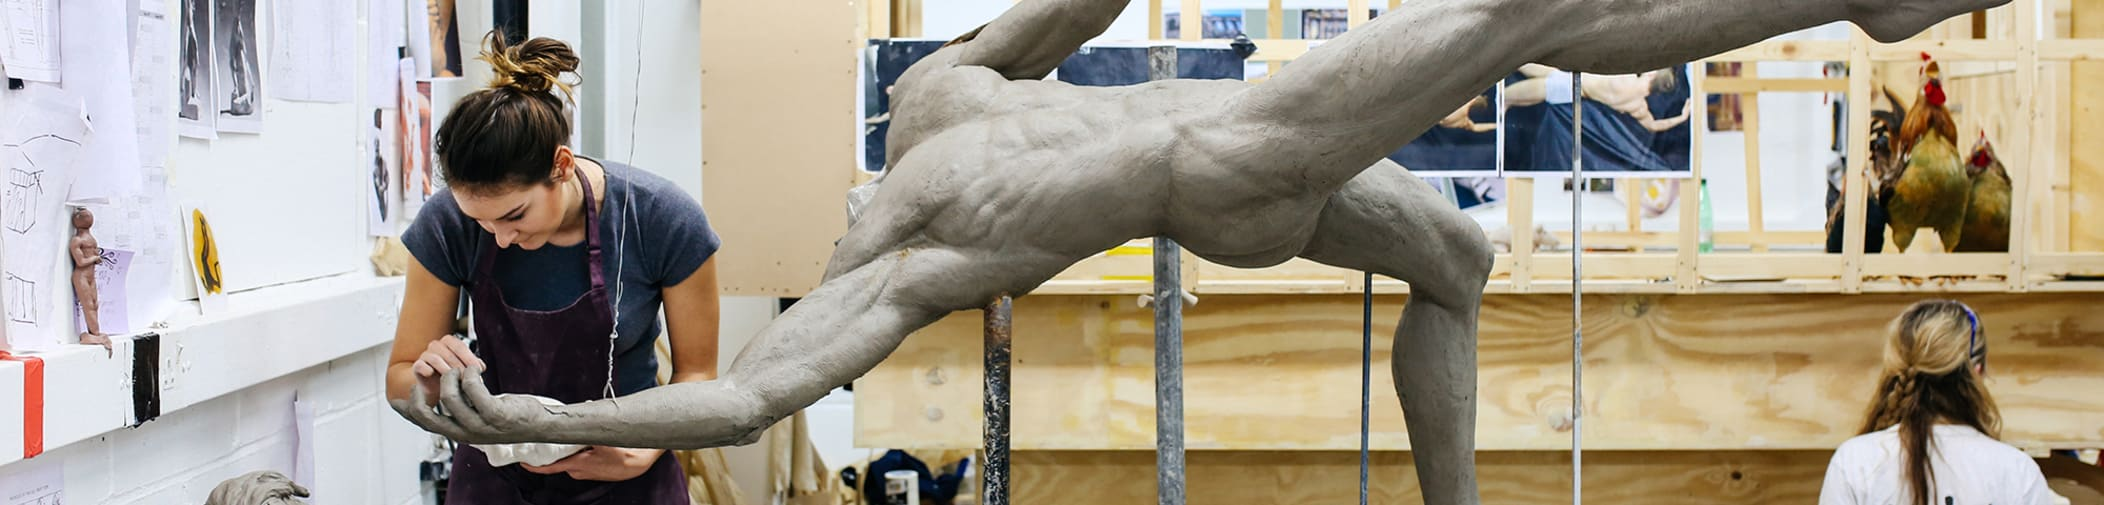 Student creating a sculpture of a body